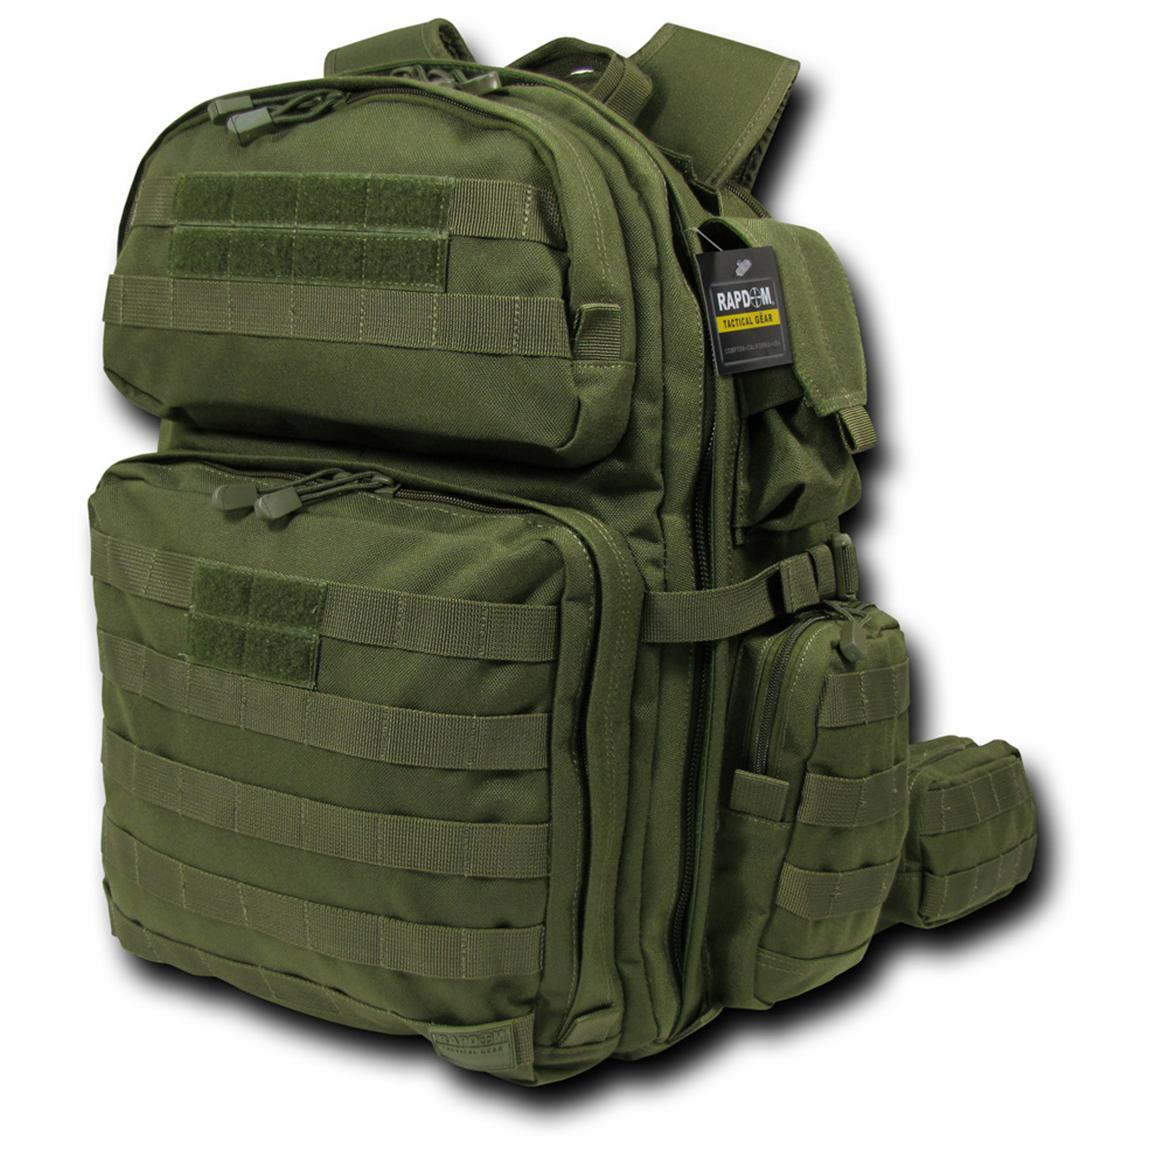 Rapid Dominance Tactical Rex (T-Rex) Assault Pack, Olive Drab